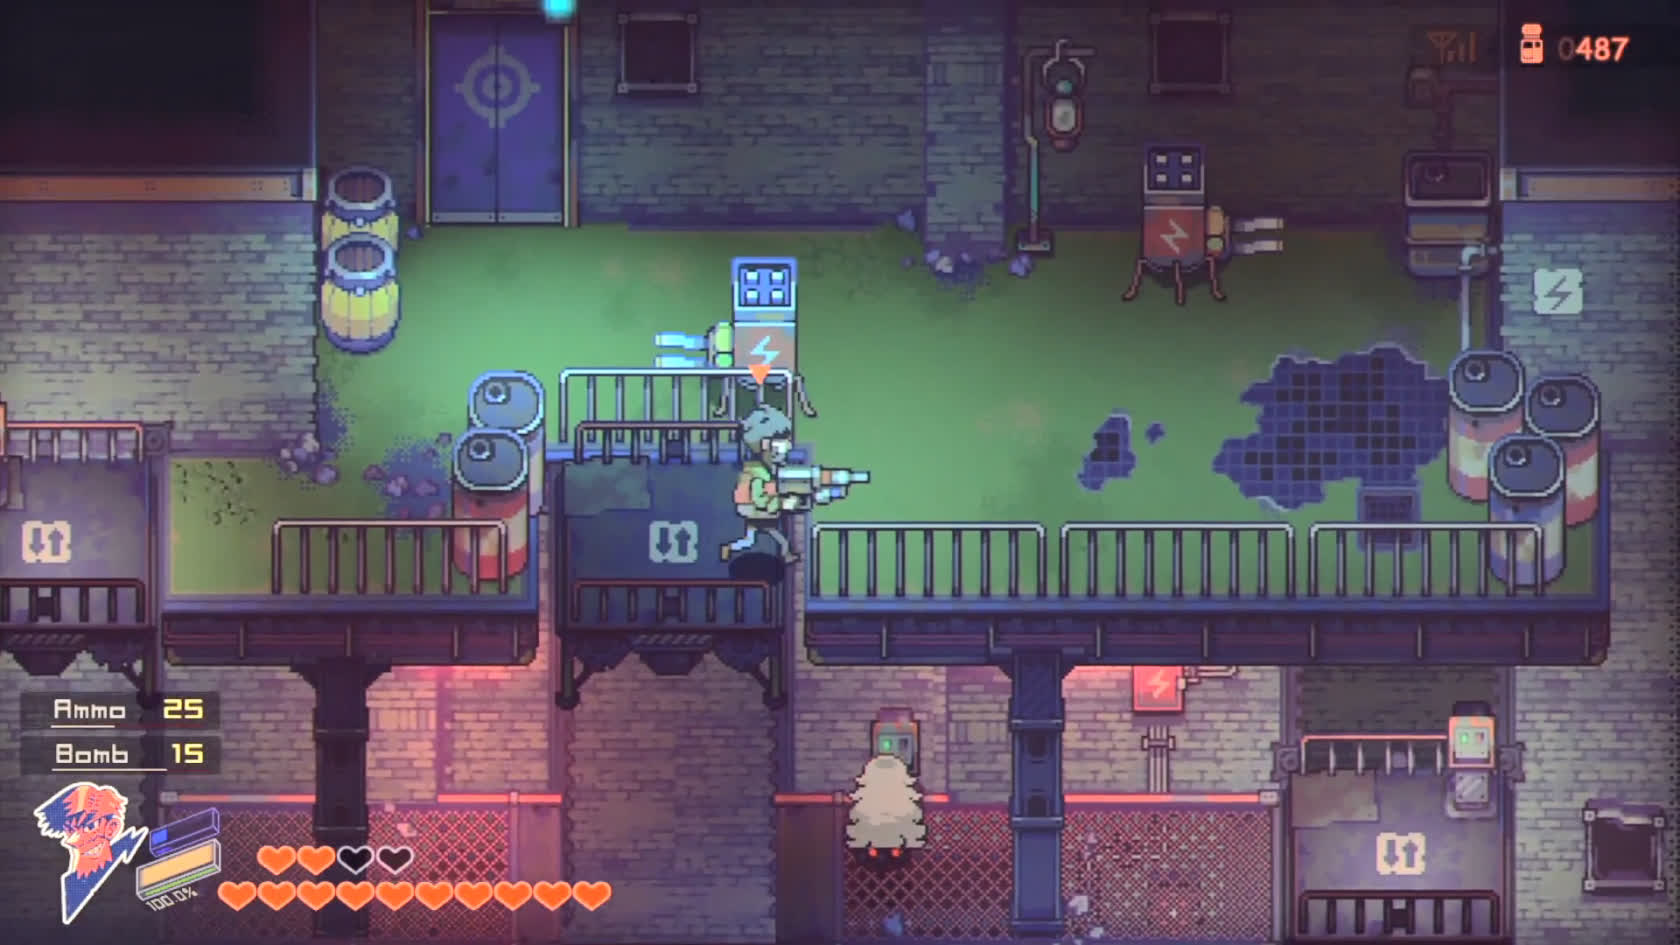 Long-awaited pixel art RPG Eastward set for September 16 release on PC, Mac and Switch